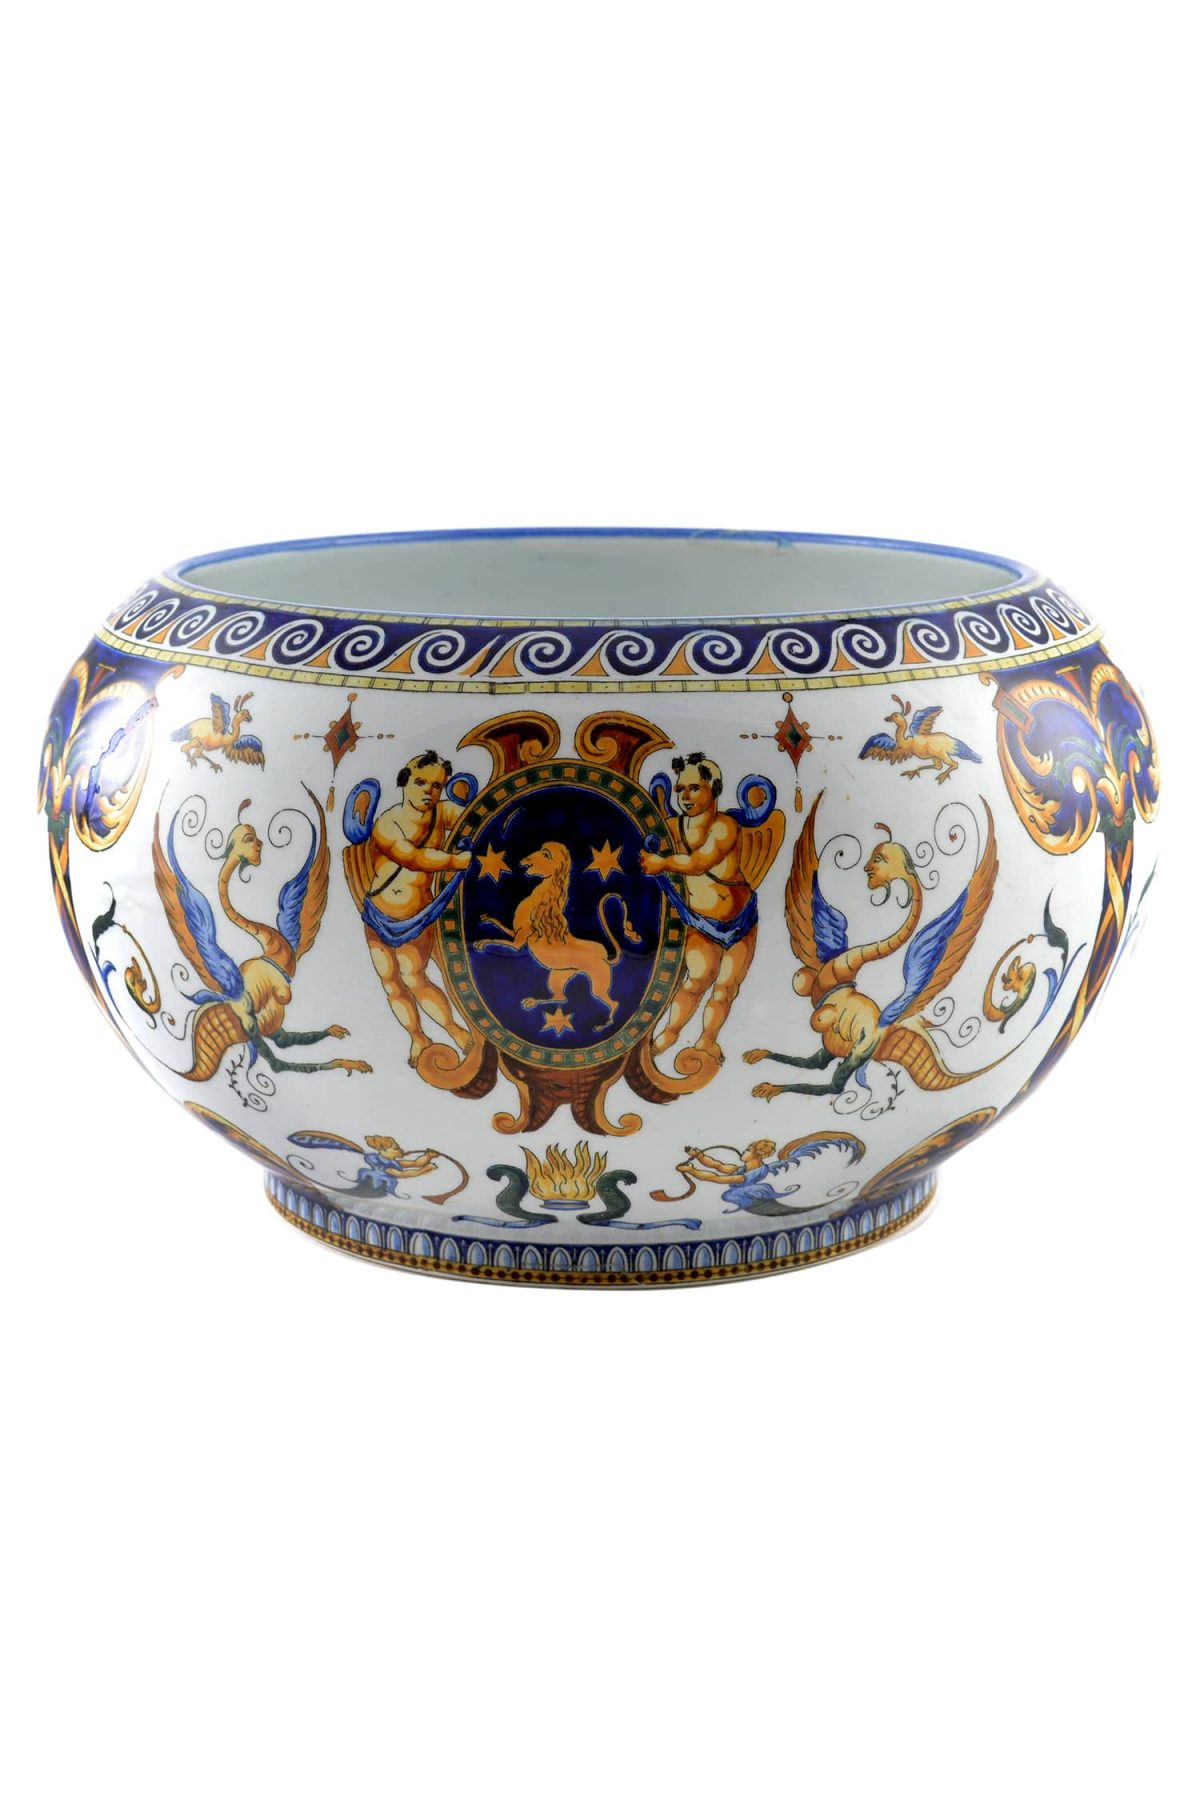 19Th Century Antique French GIEN Faience Bowl, FRANCE 1876